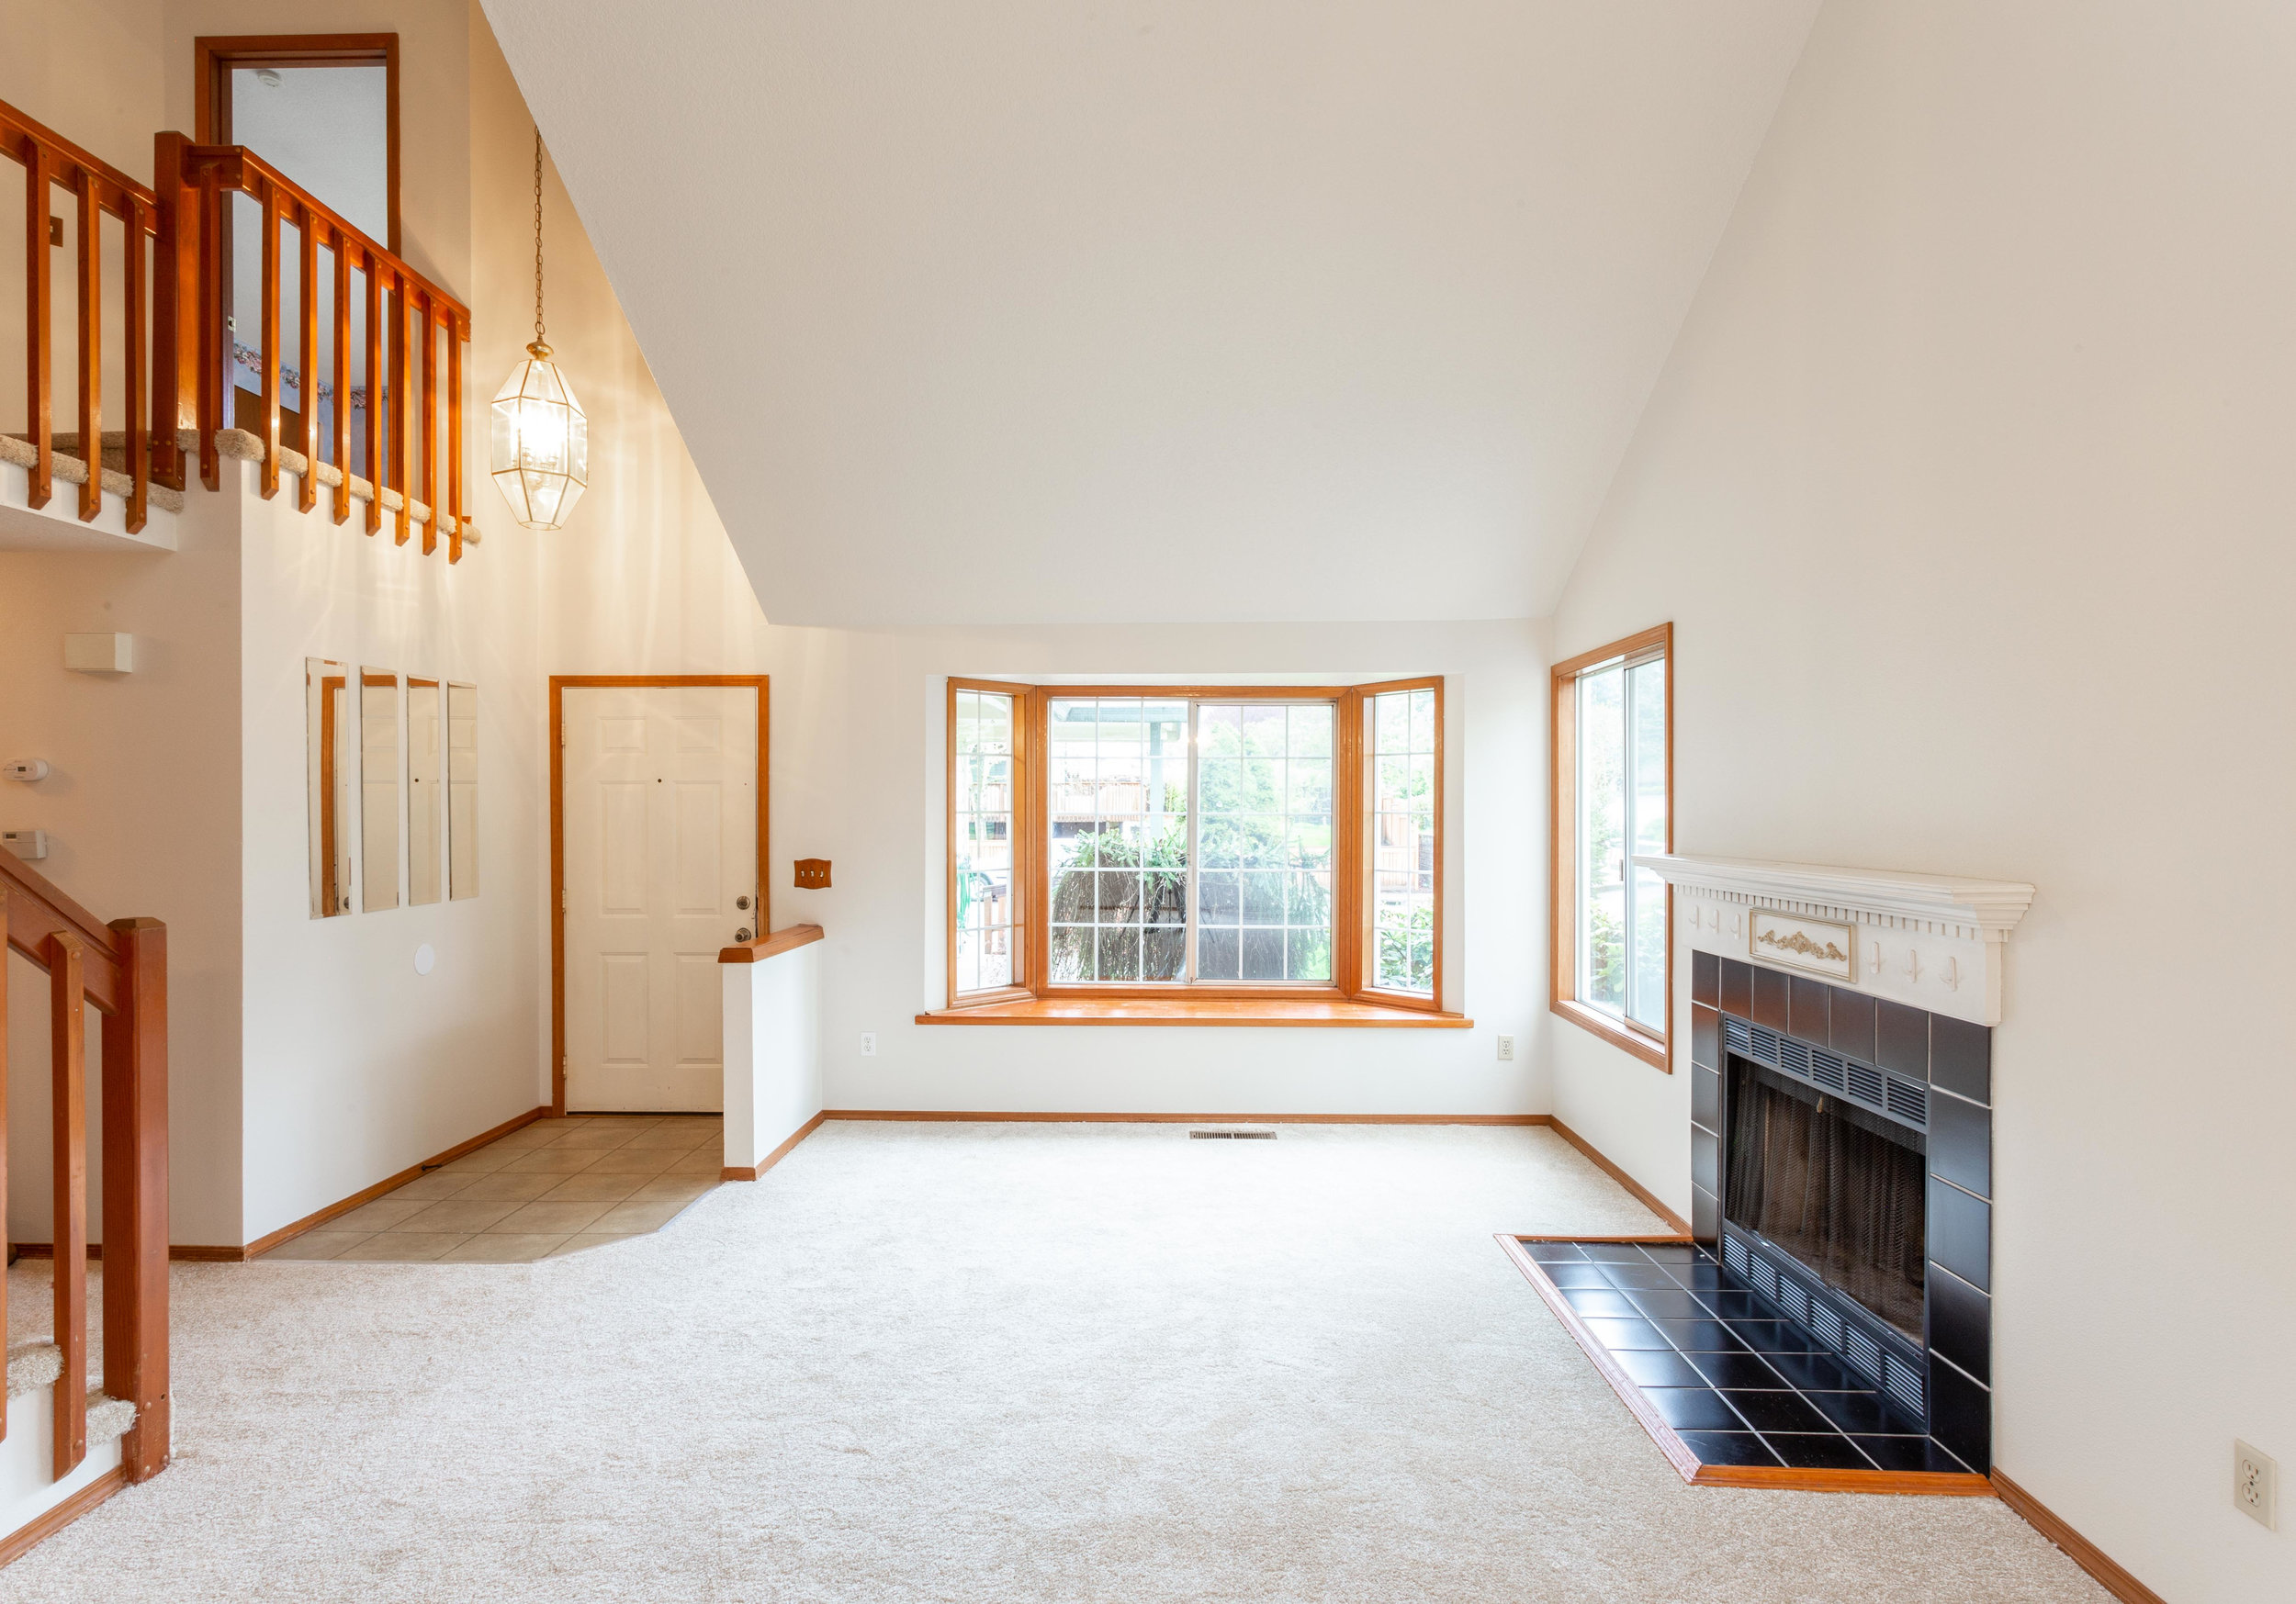 Vaulted living room with wood burning fireplace and dining room (picture taken from dining room)